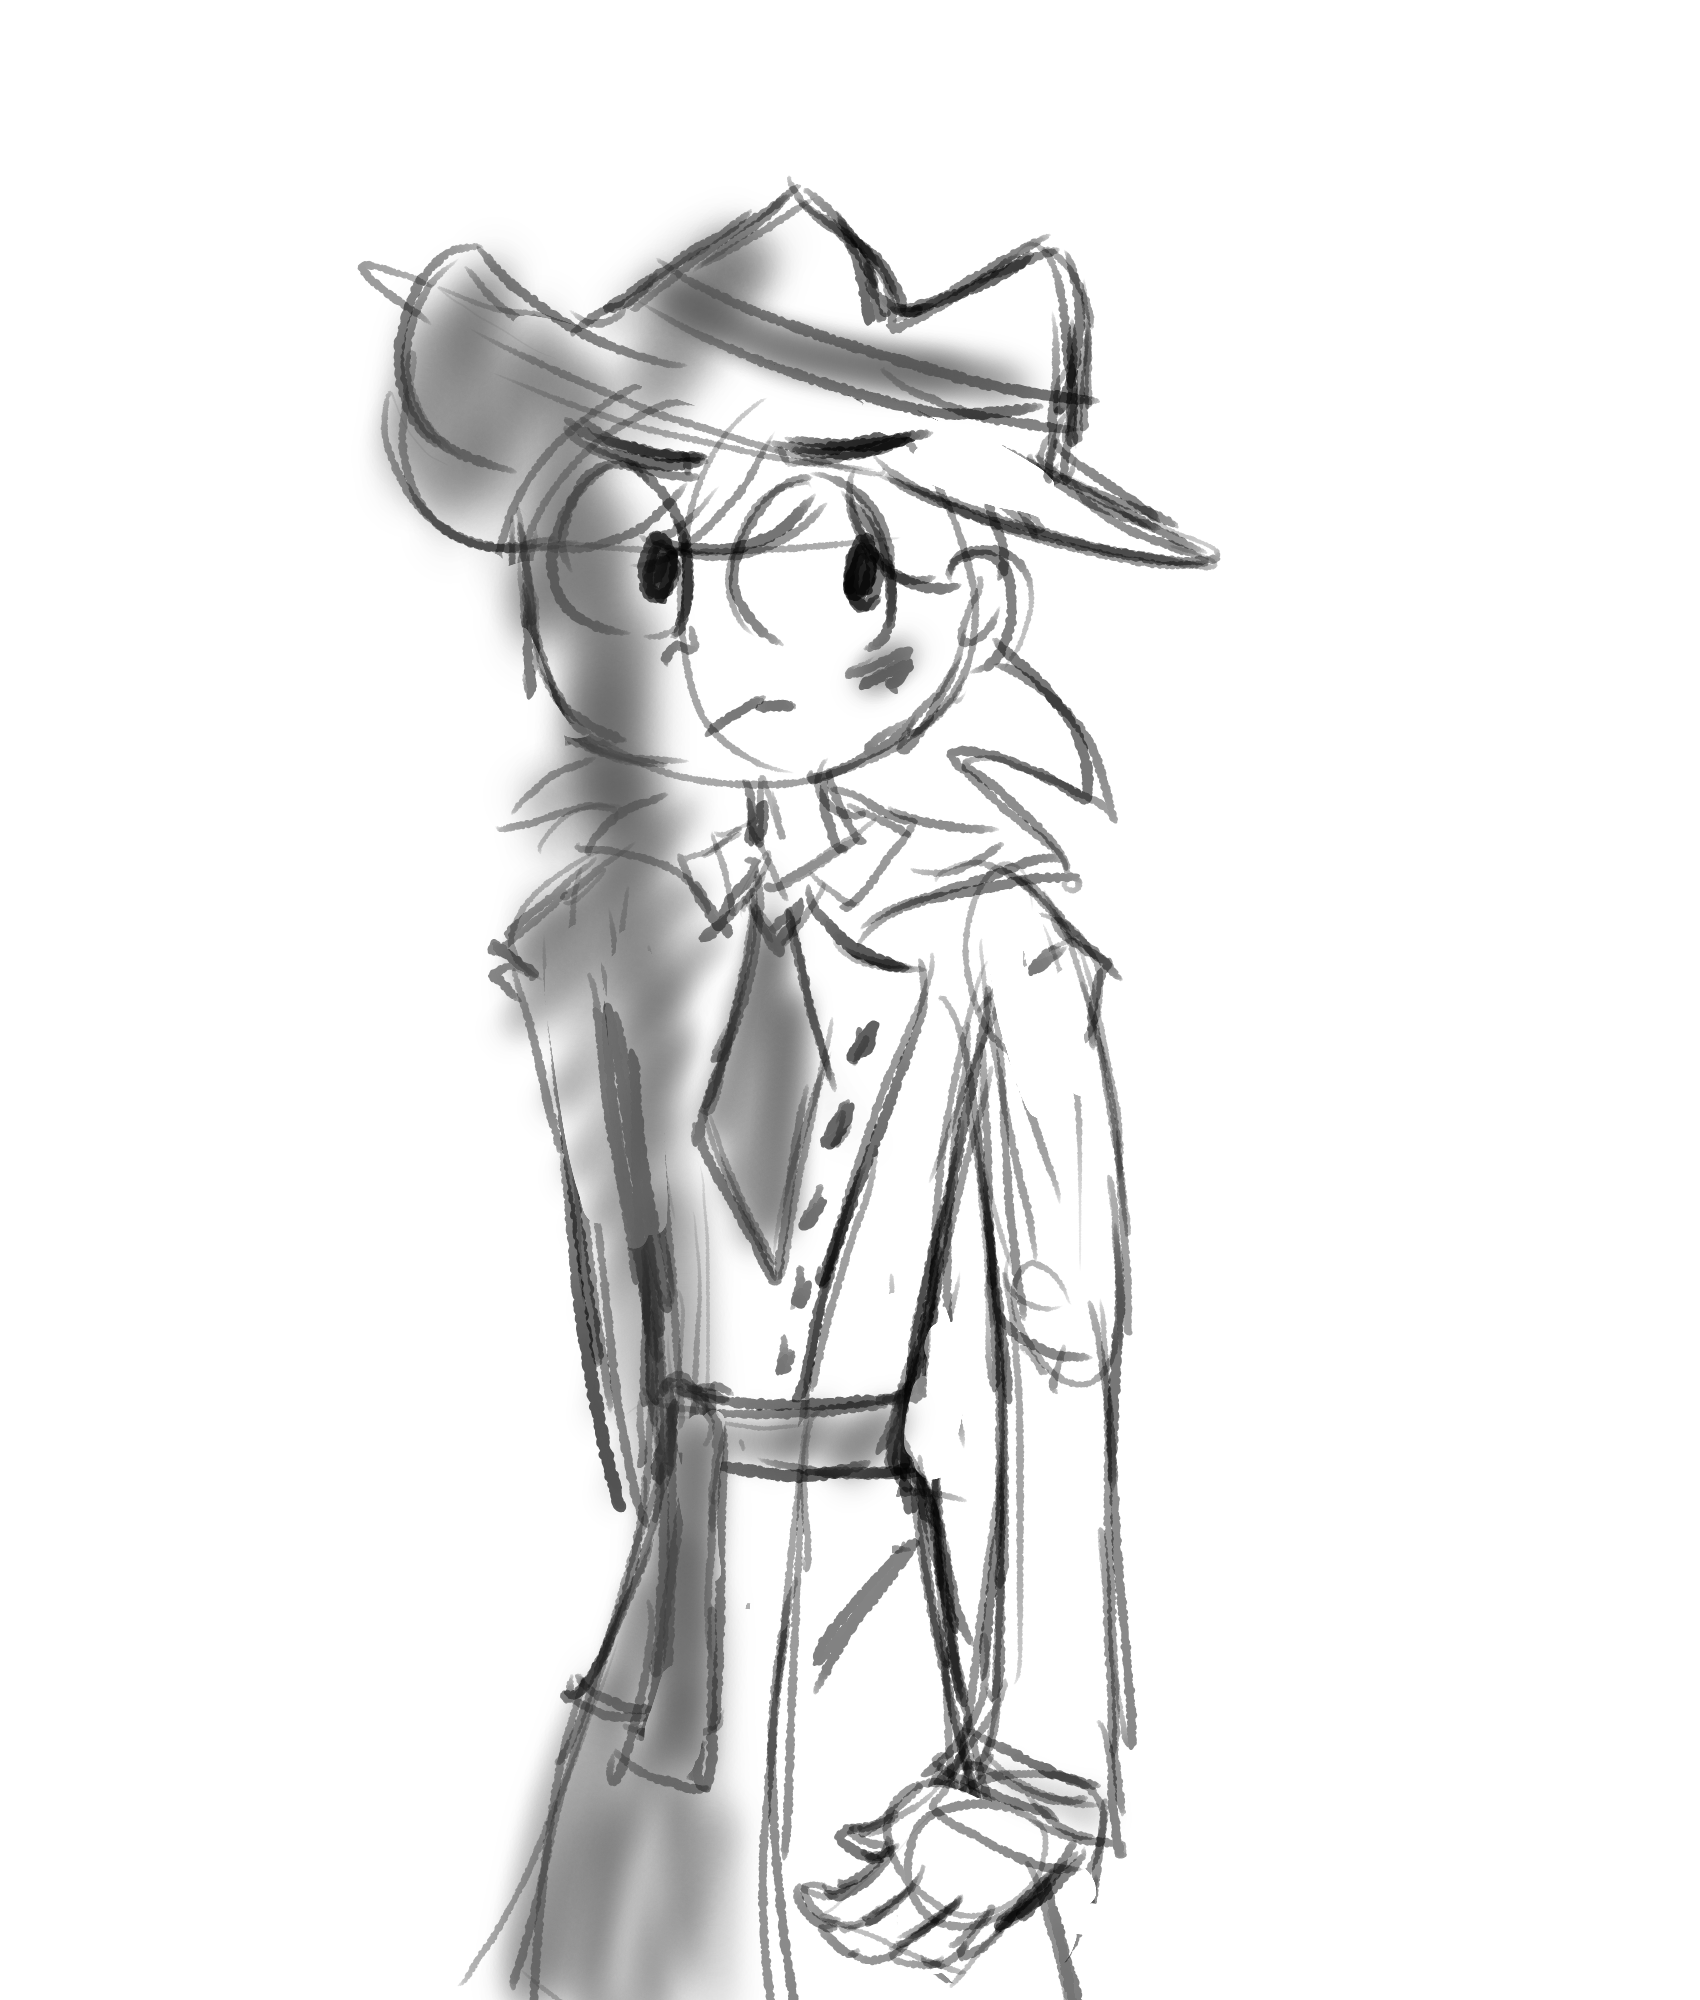 1700x2000 I Drew A Guy In A Trench Coat By Thepurplegriffin